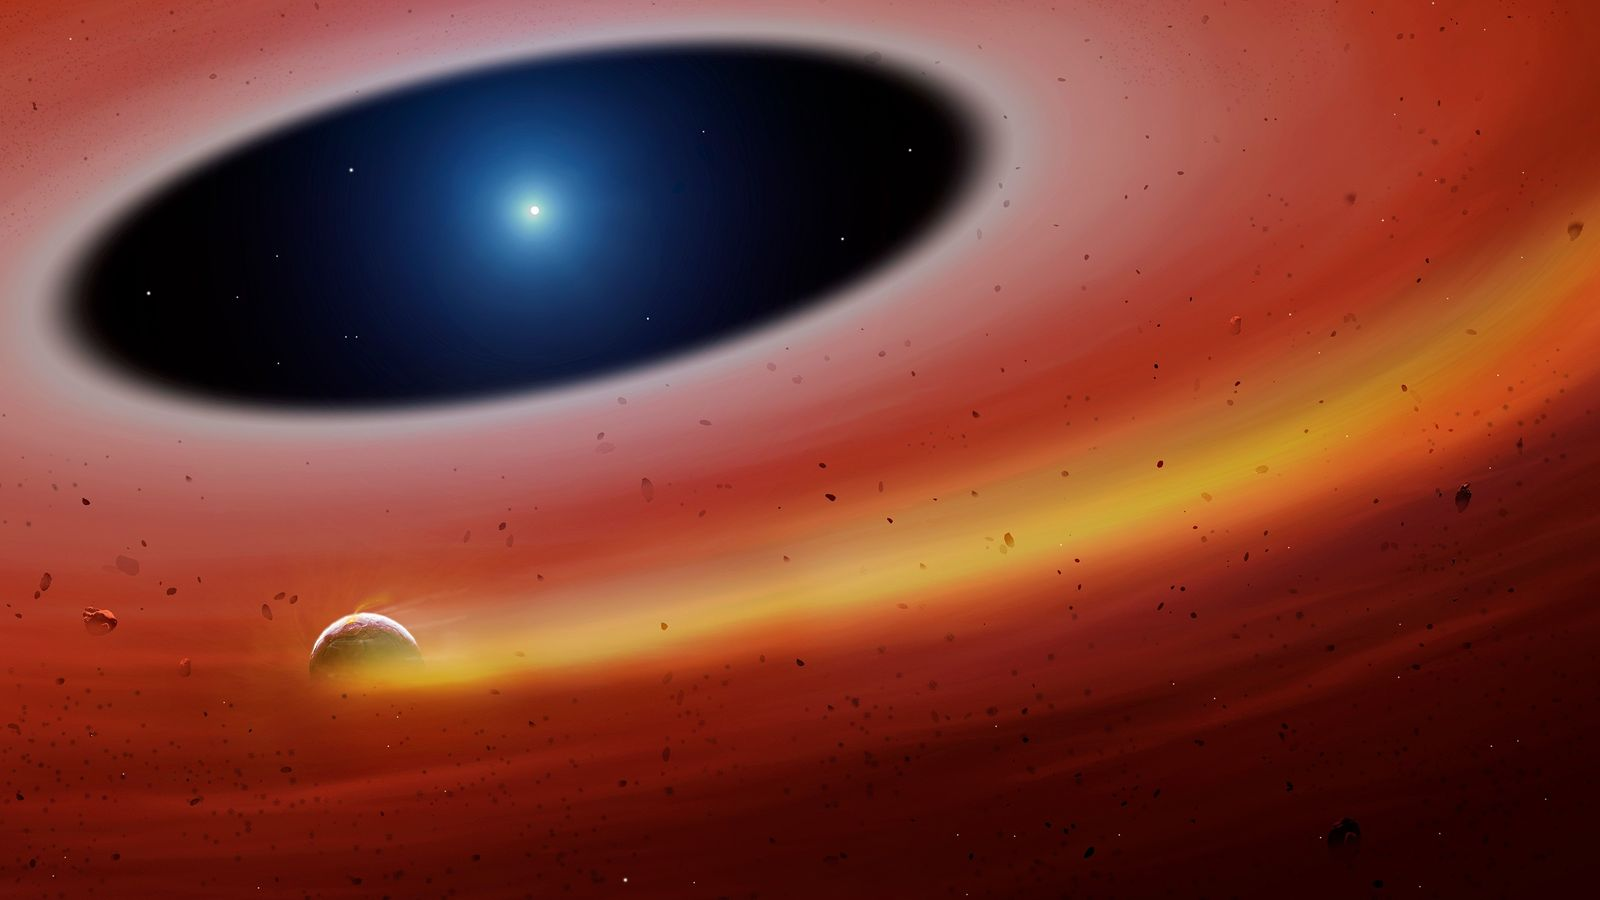 A planetary fragment orbits a white dwarf star in an illustration of the newfound system.